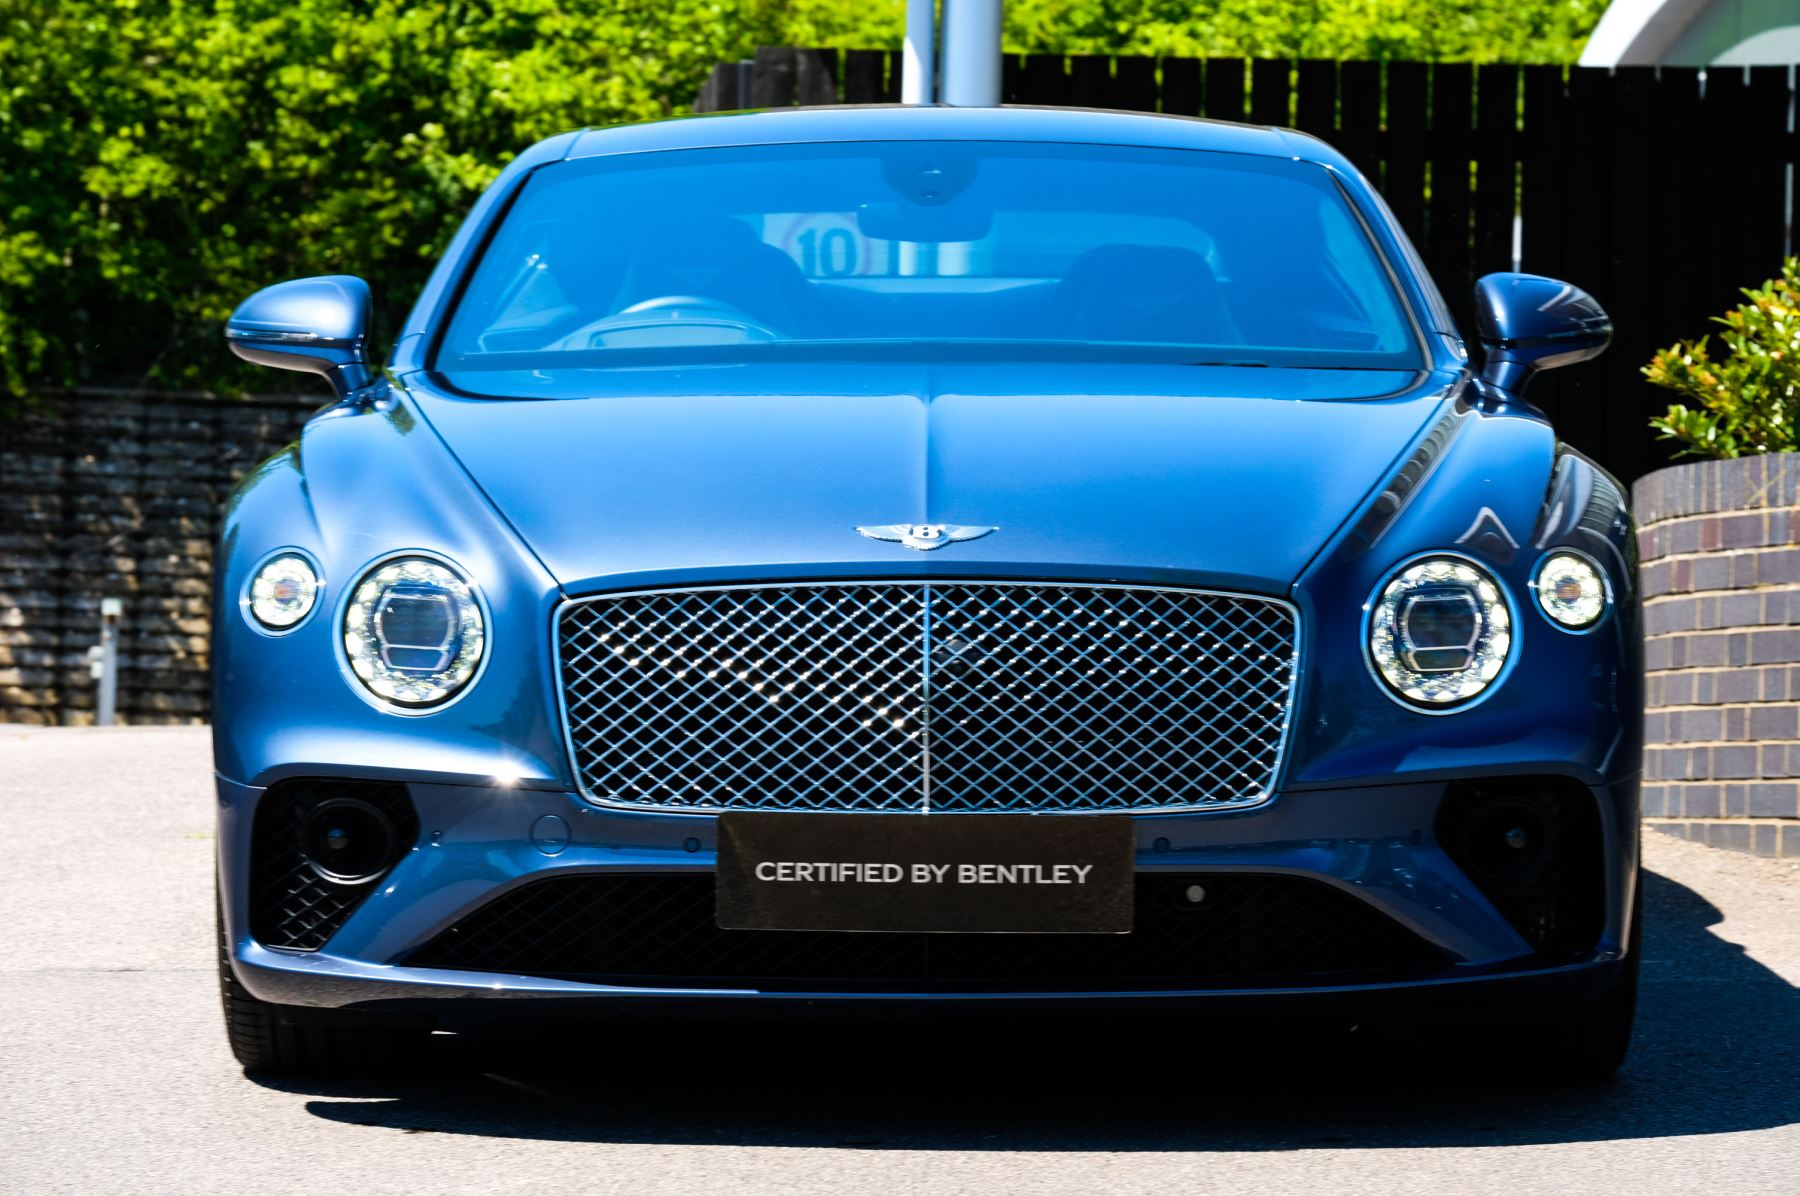 Bentley Continental GT 6.0 W12 - CITY + TOURING SPECIFICATION image 2